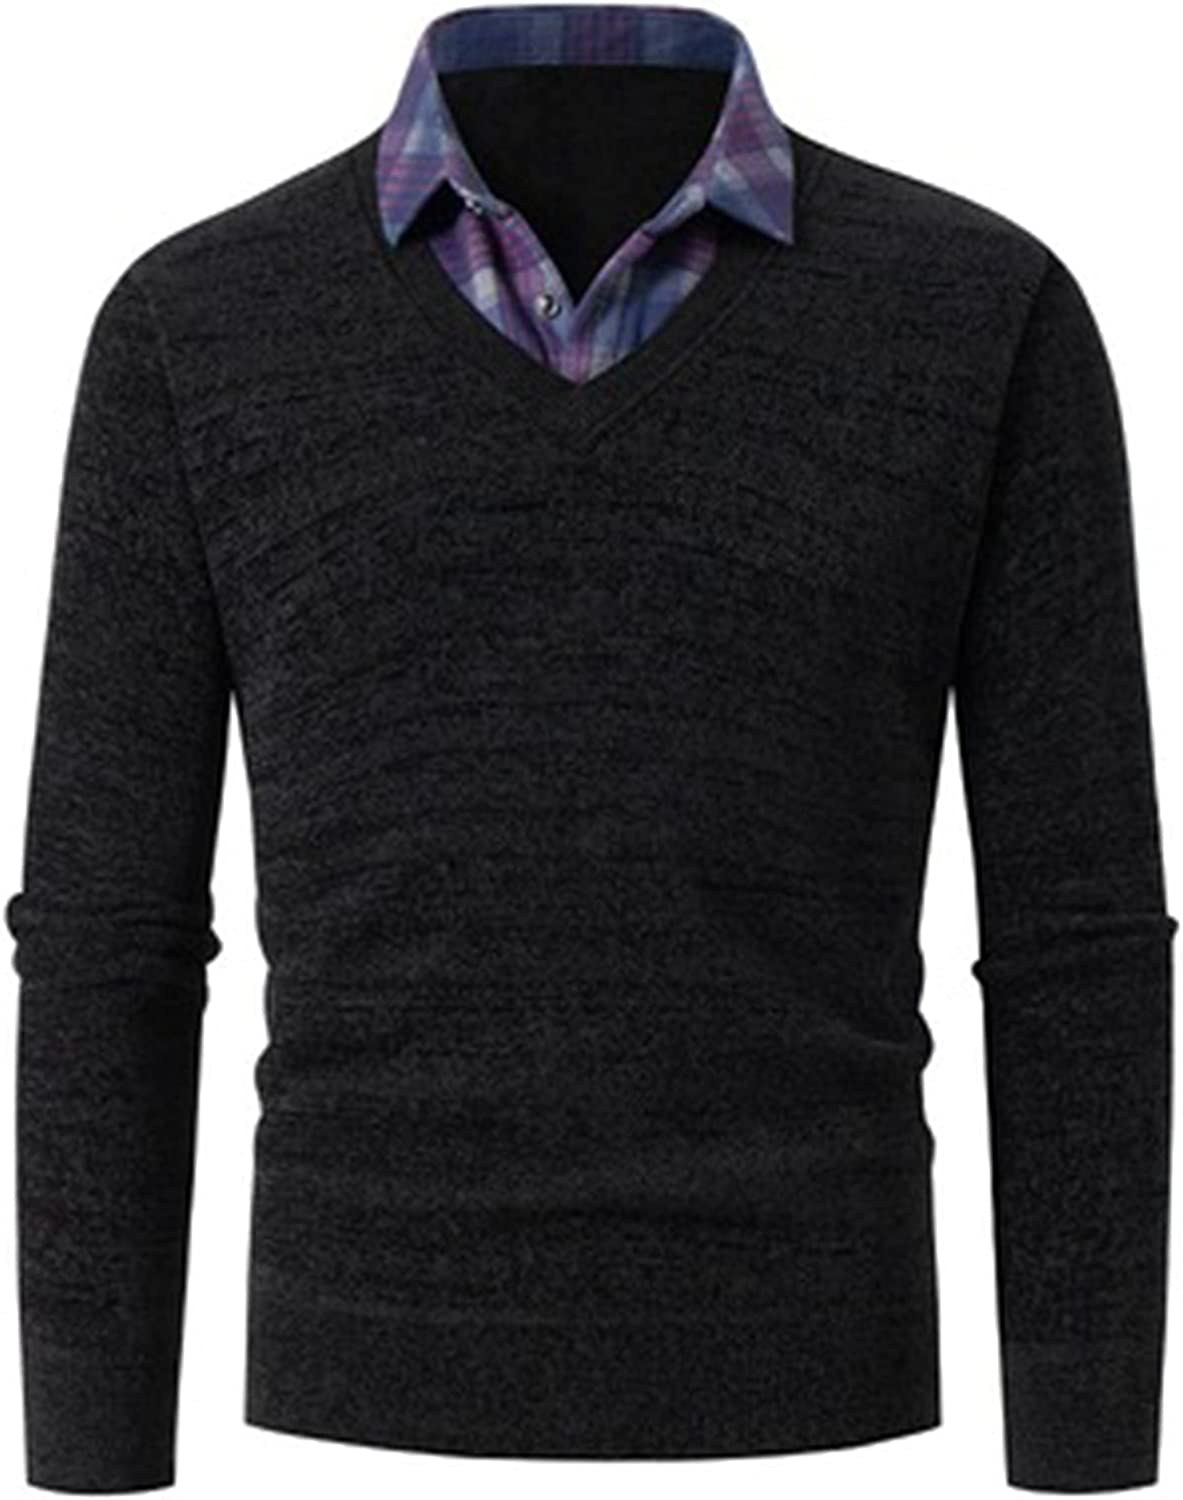 QZH.DUAO Men's Casual Large special price Slim Knitted Pullover Max 54% OFF Sweaters Fit